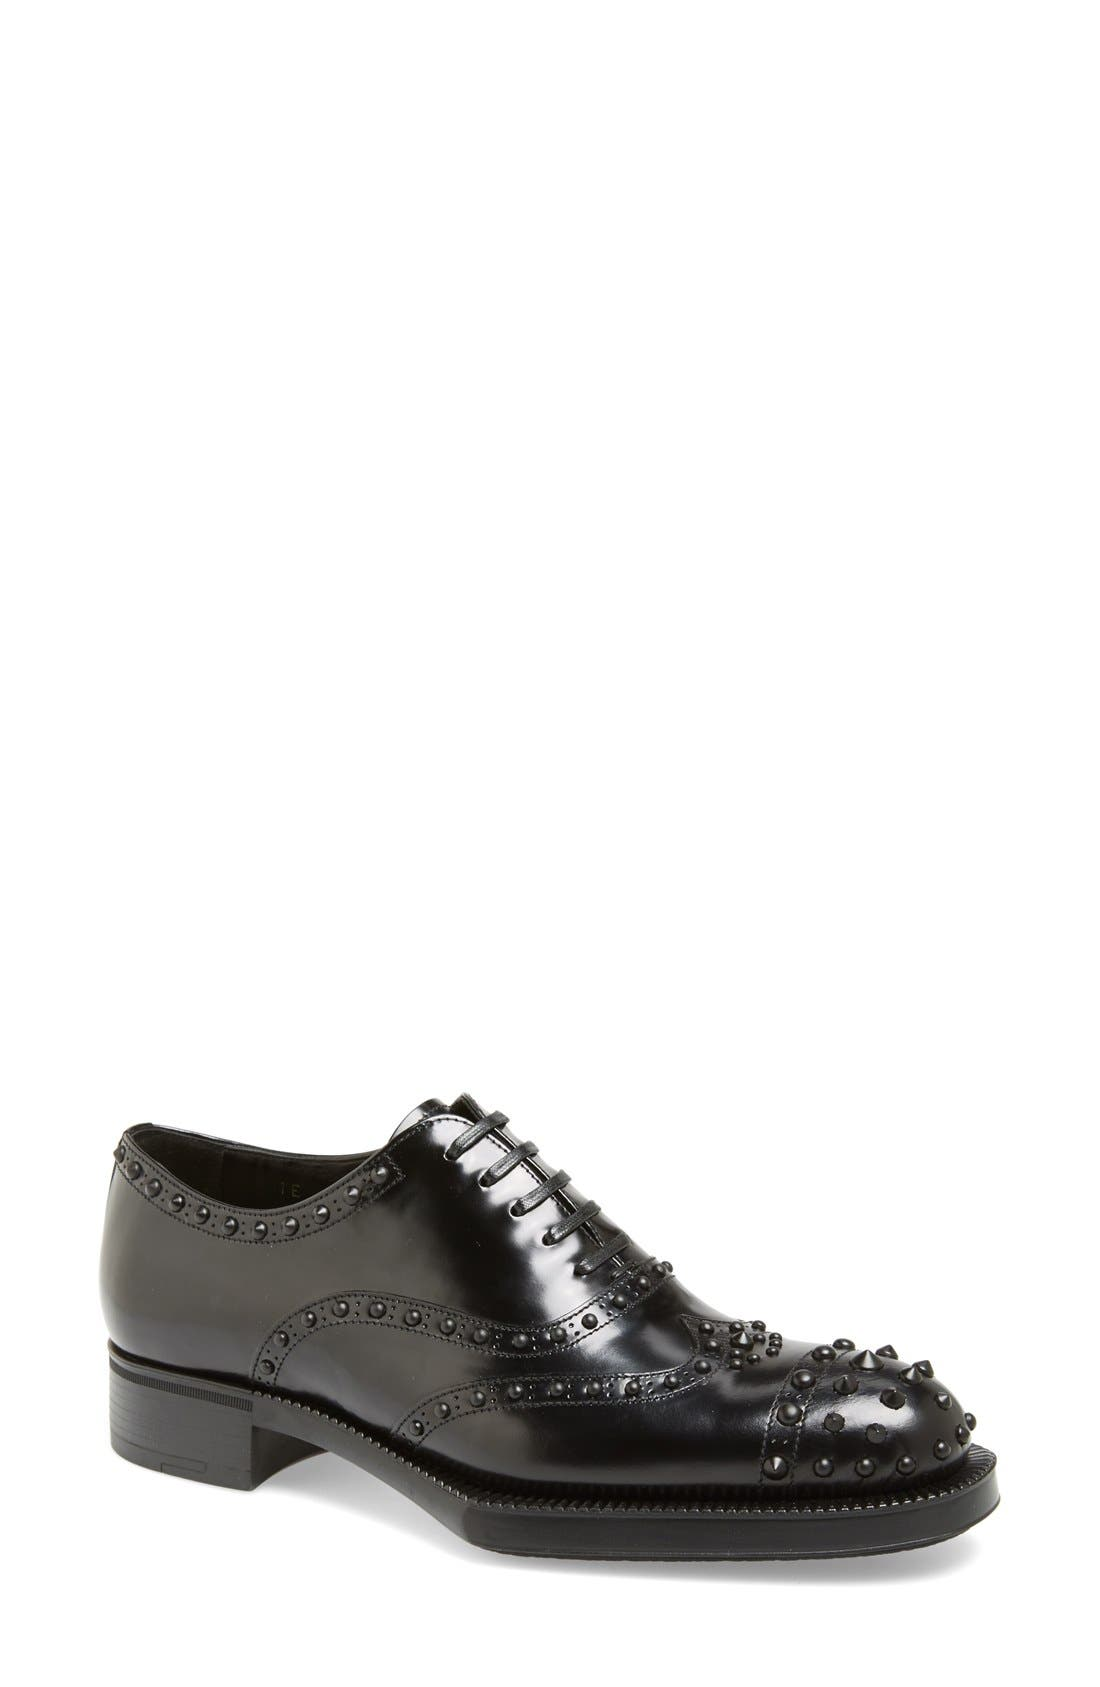 Alternate Image 1 Selected - Prada Studded Wingtip Oxford (Women)